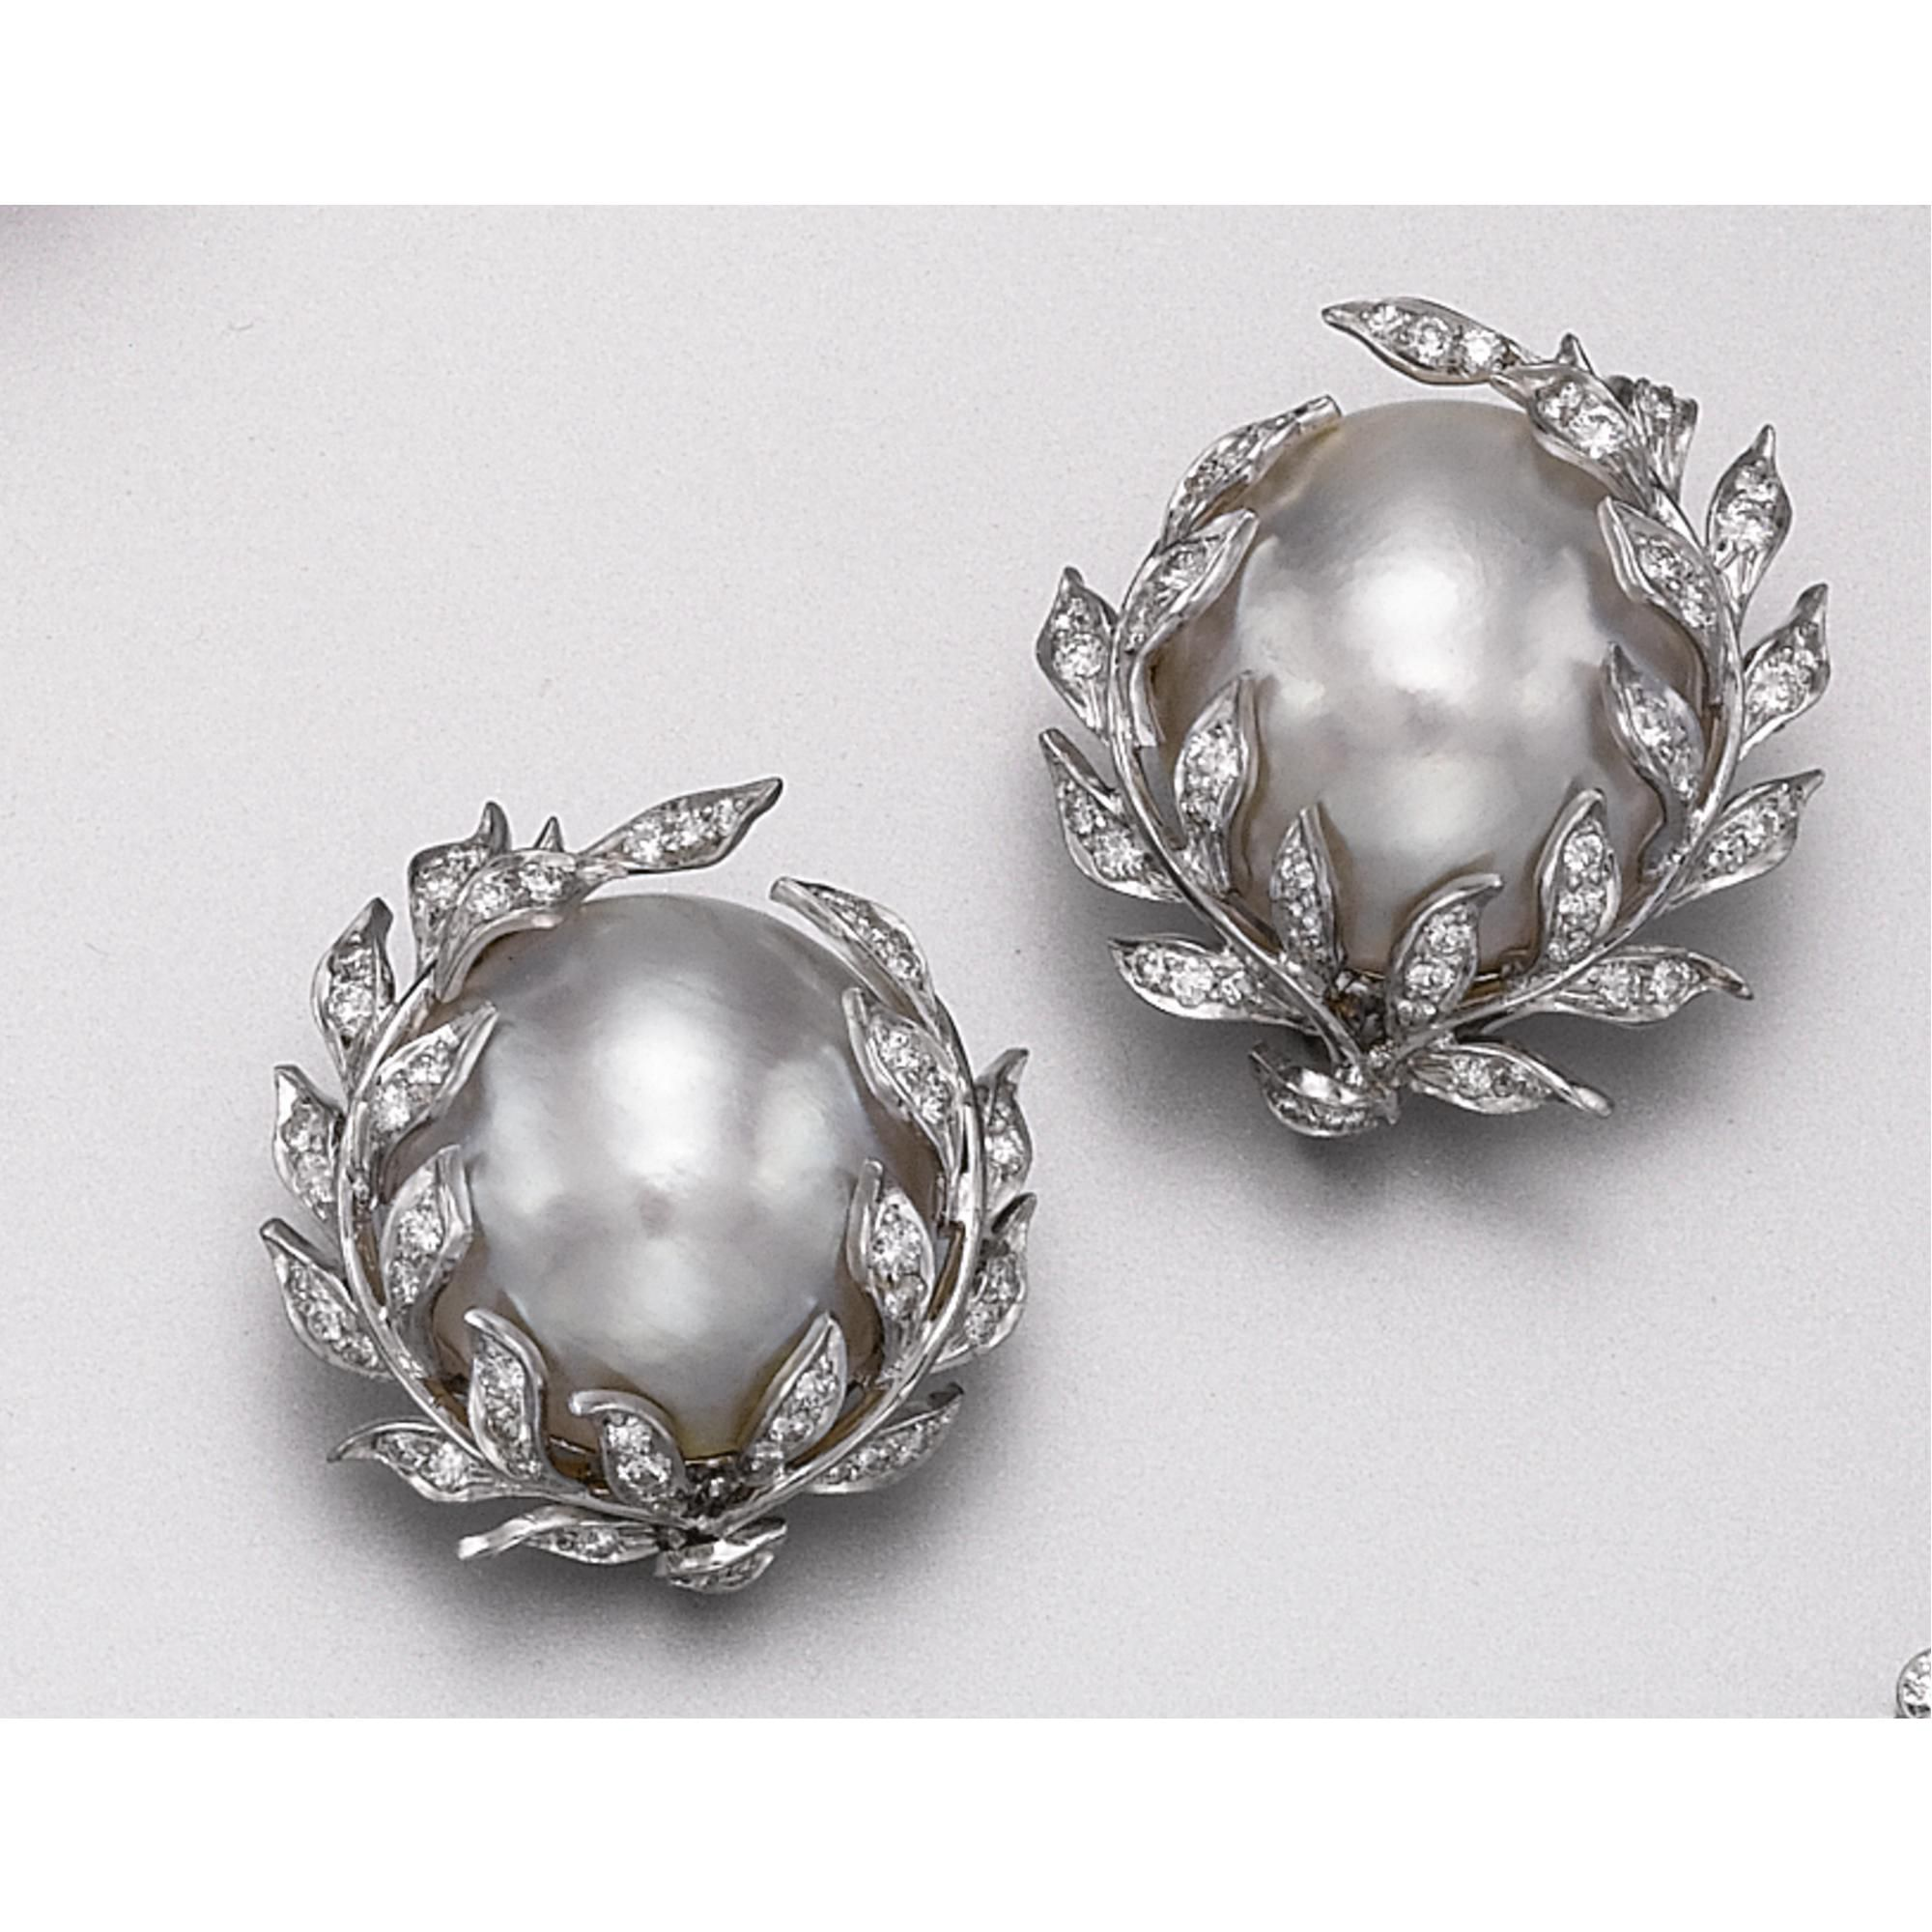 iris blog spotlight stella jewelry earrings ball david shops designer swan webb